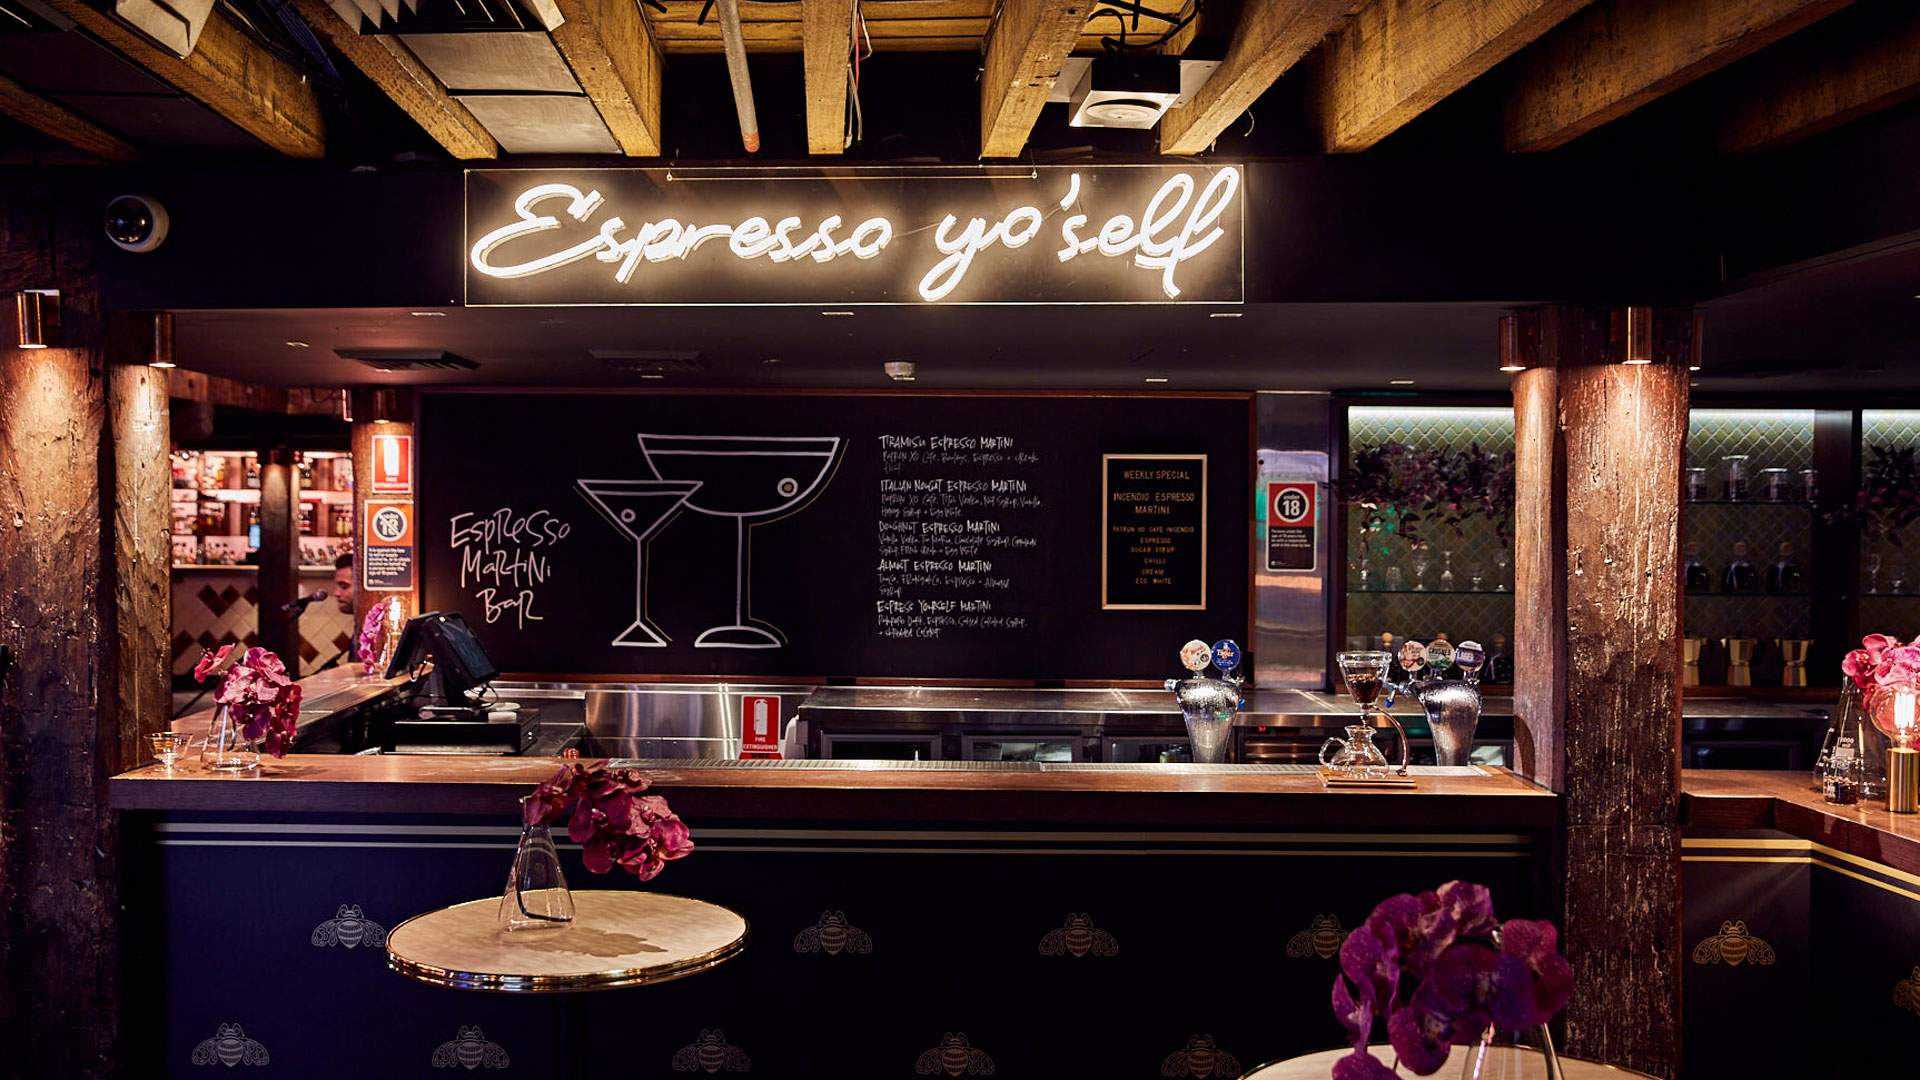 Espresso Martini Pop-Up